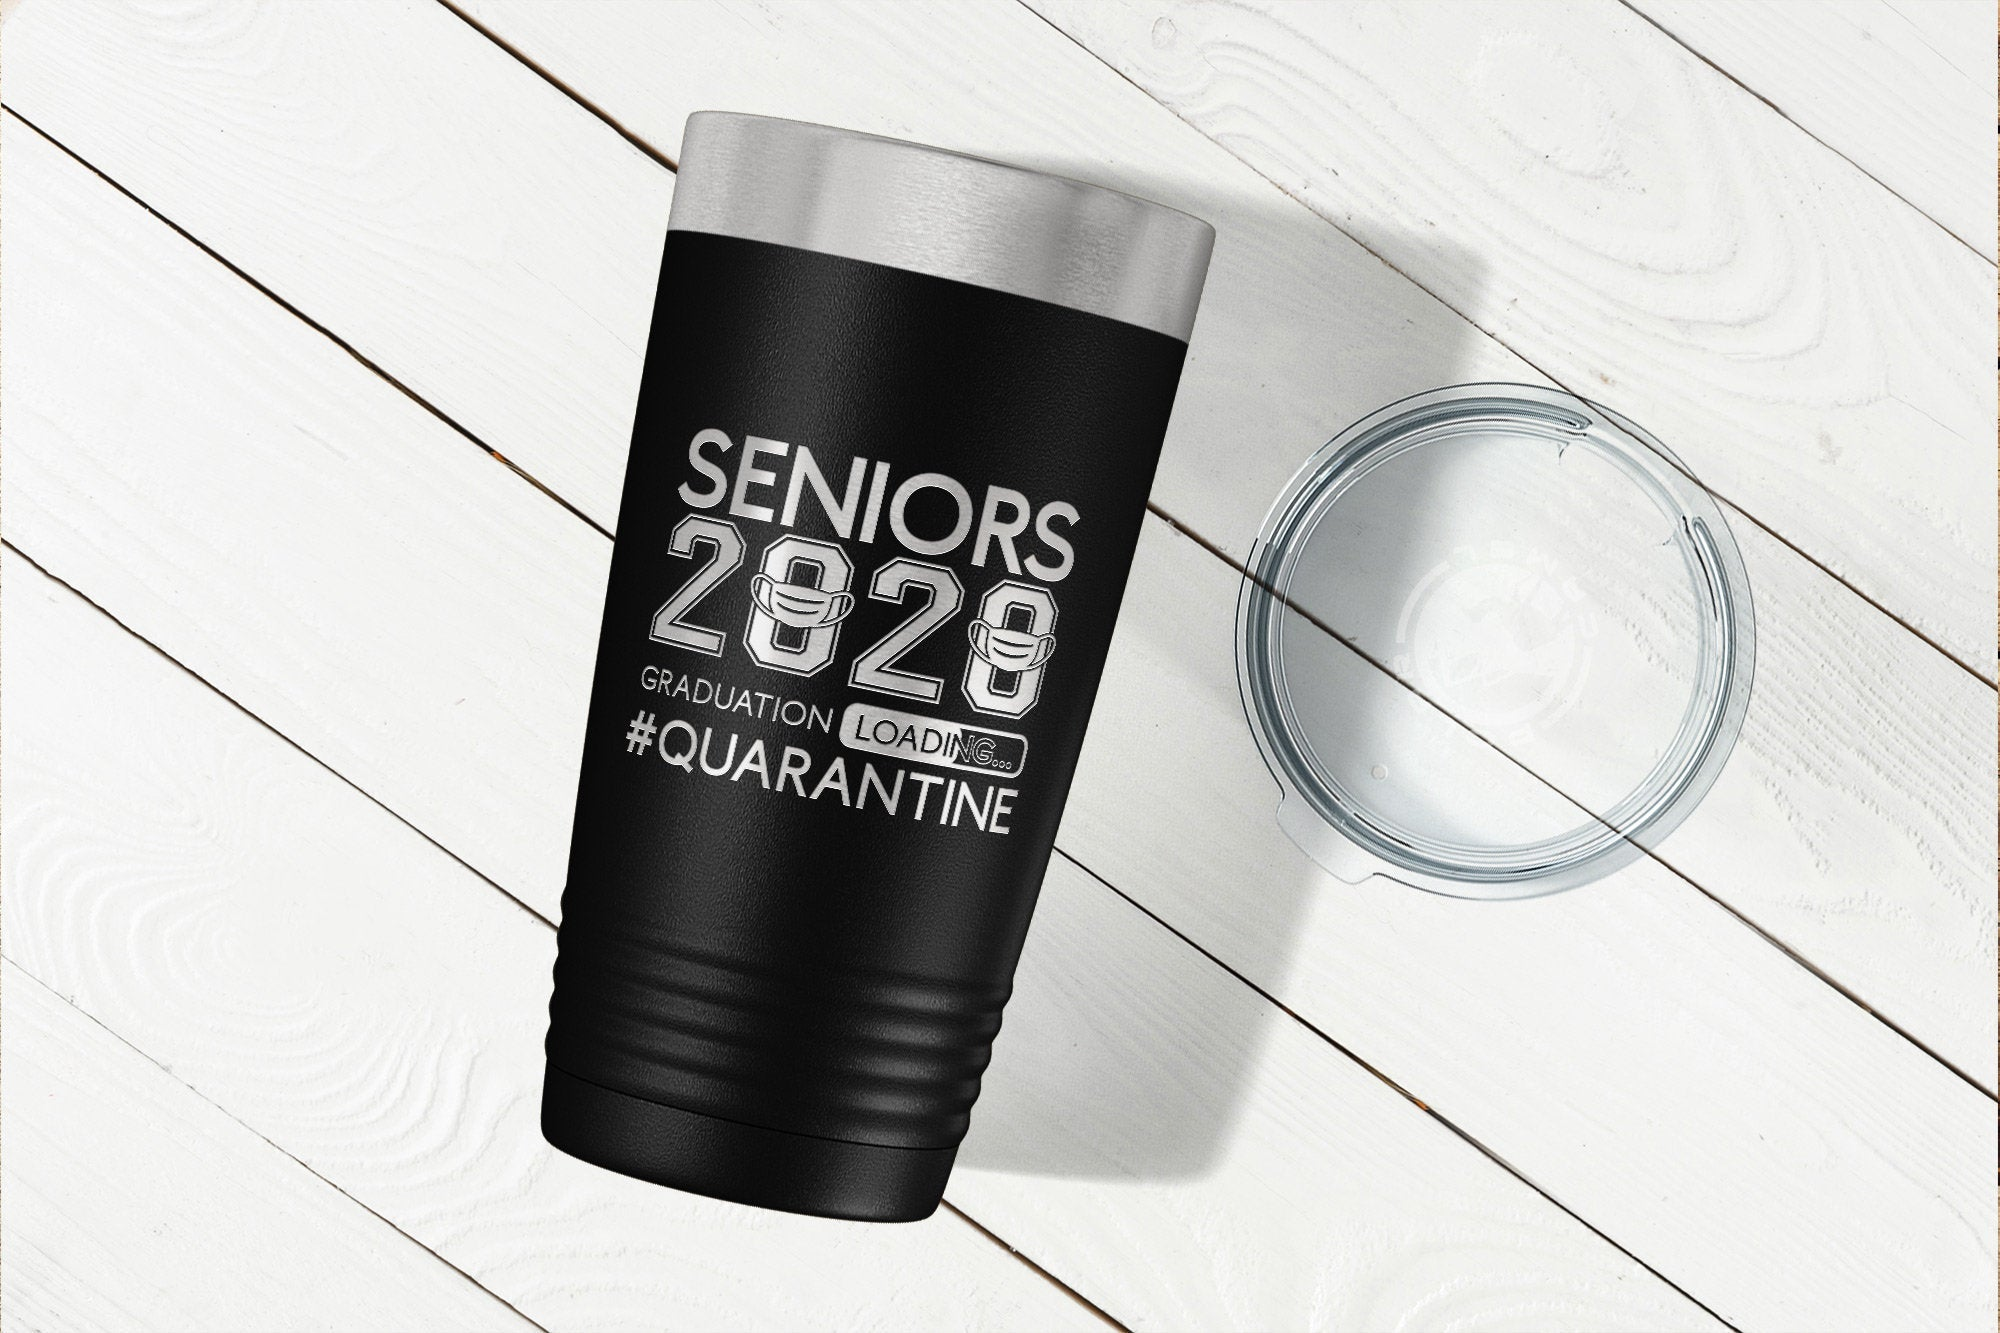 Senior 2020 Tumbler - Graduation Loading #Quarantine-Tumblers + Water Bottles-Maddie & Co.